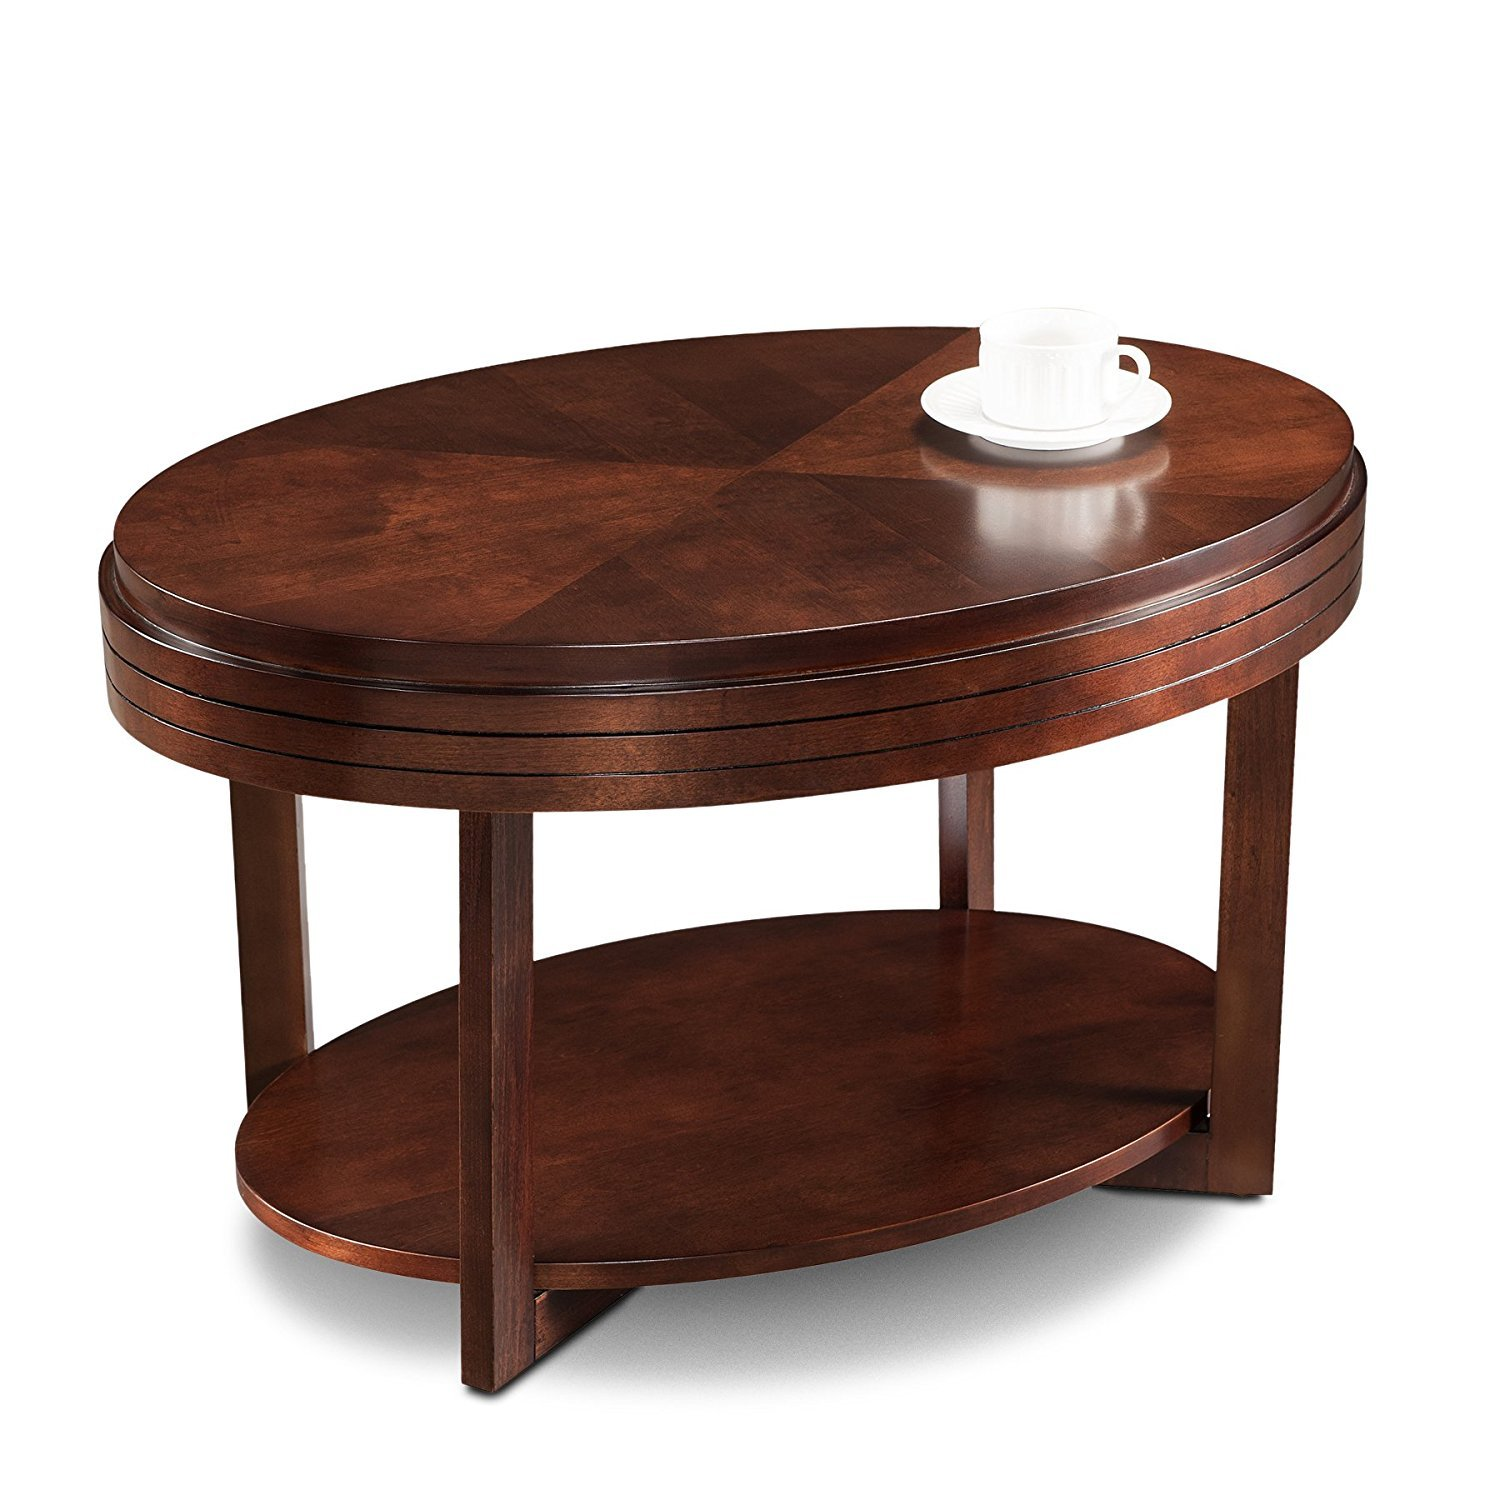 Oval Coffee Table Plans: Oval Coffee Table With Storage